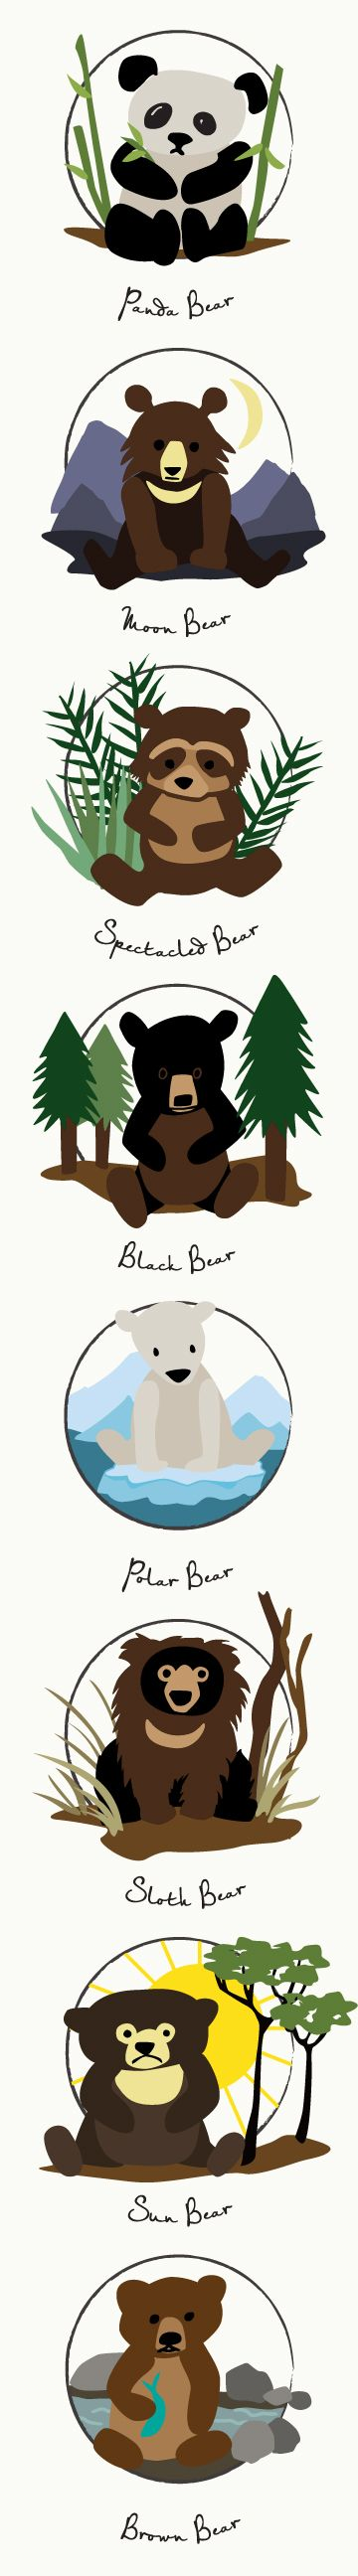 Ursidae Poster featuring all 8 species of bear by Daughter Earth (Panda, Moon Bear, Spectacled Bear, Black Bear, Polar Bear, Sloth Bear, Sun Bear, Brown Bear)   What about Kodiak and Grizzly Bear? Both are subspecies of Brown Bear. And Koalas? They are Marsupials.